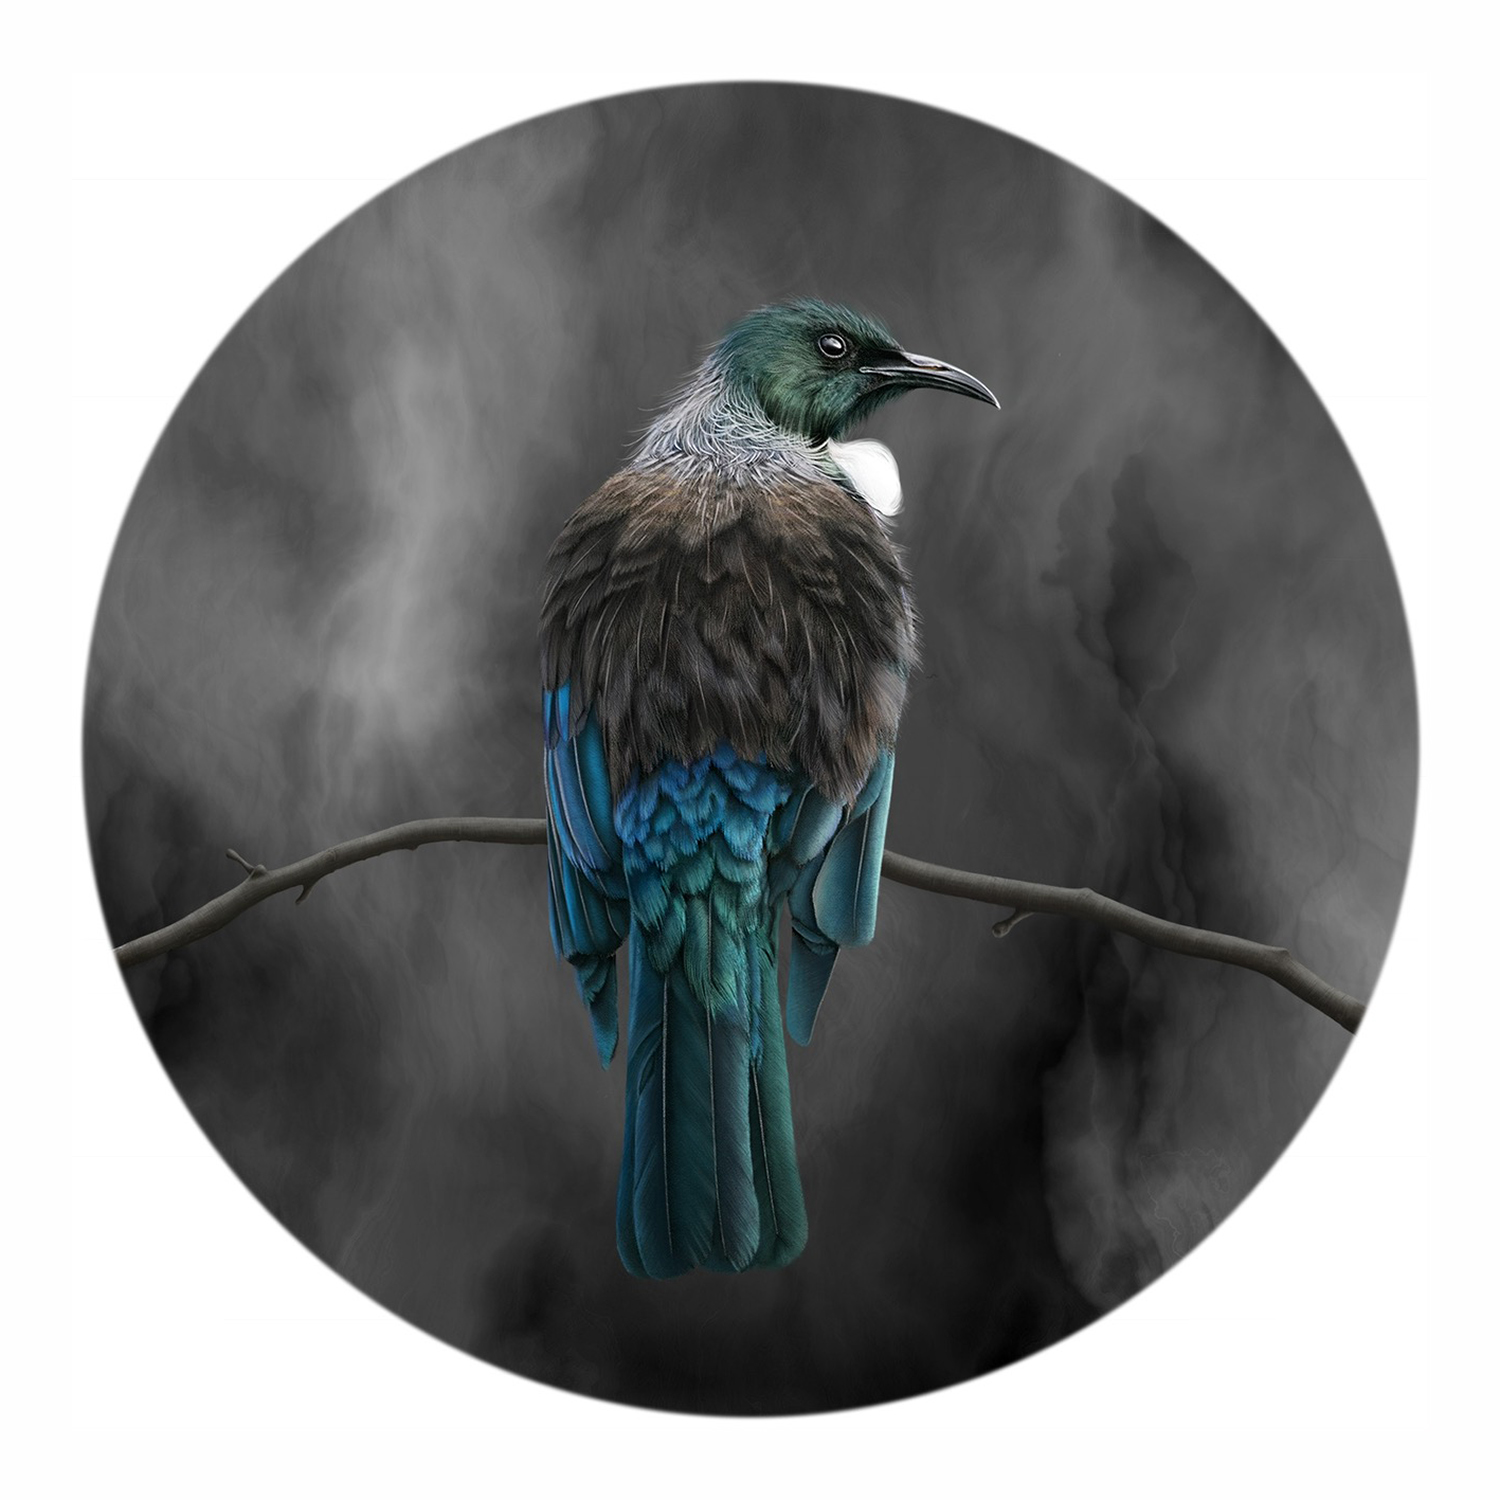 Night Watchman (collaboration with Nathan Secker - Published)